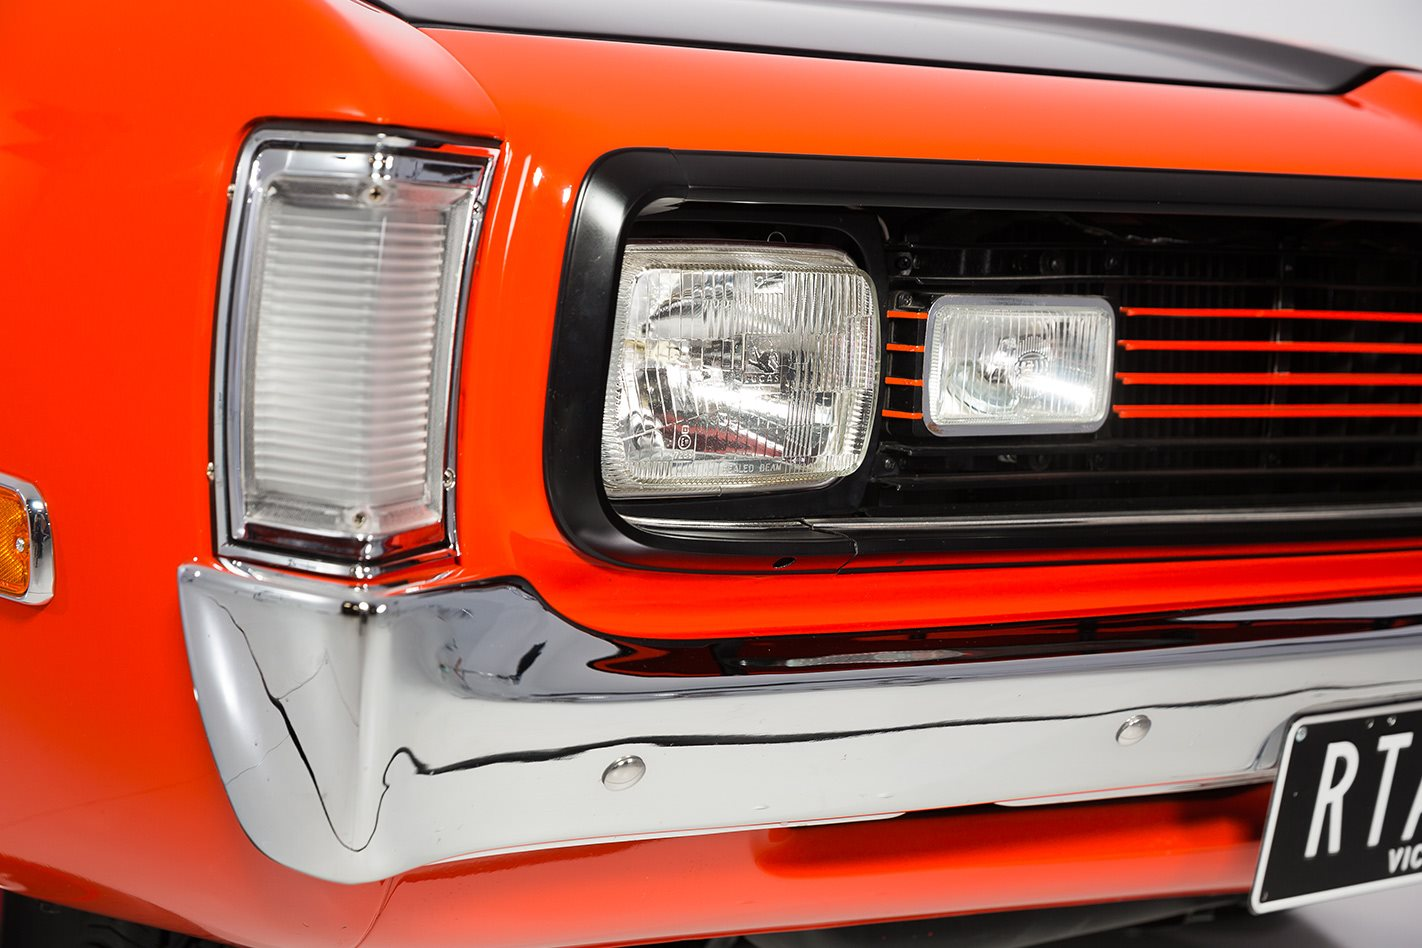 Valiant Charger headlight